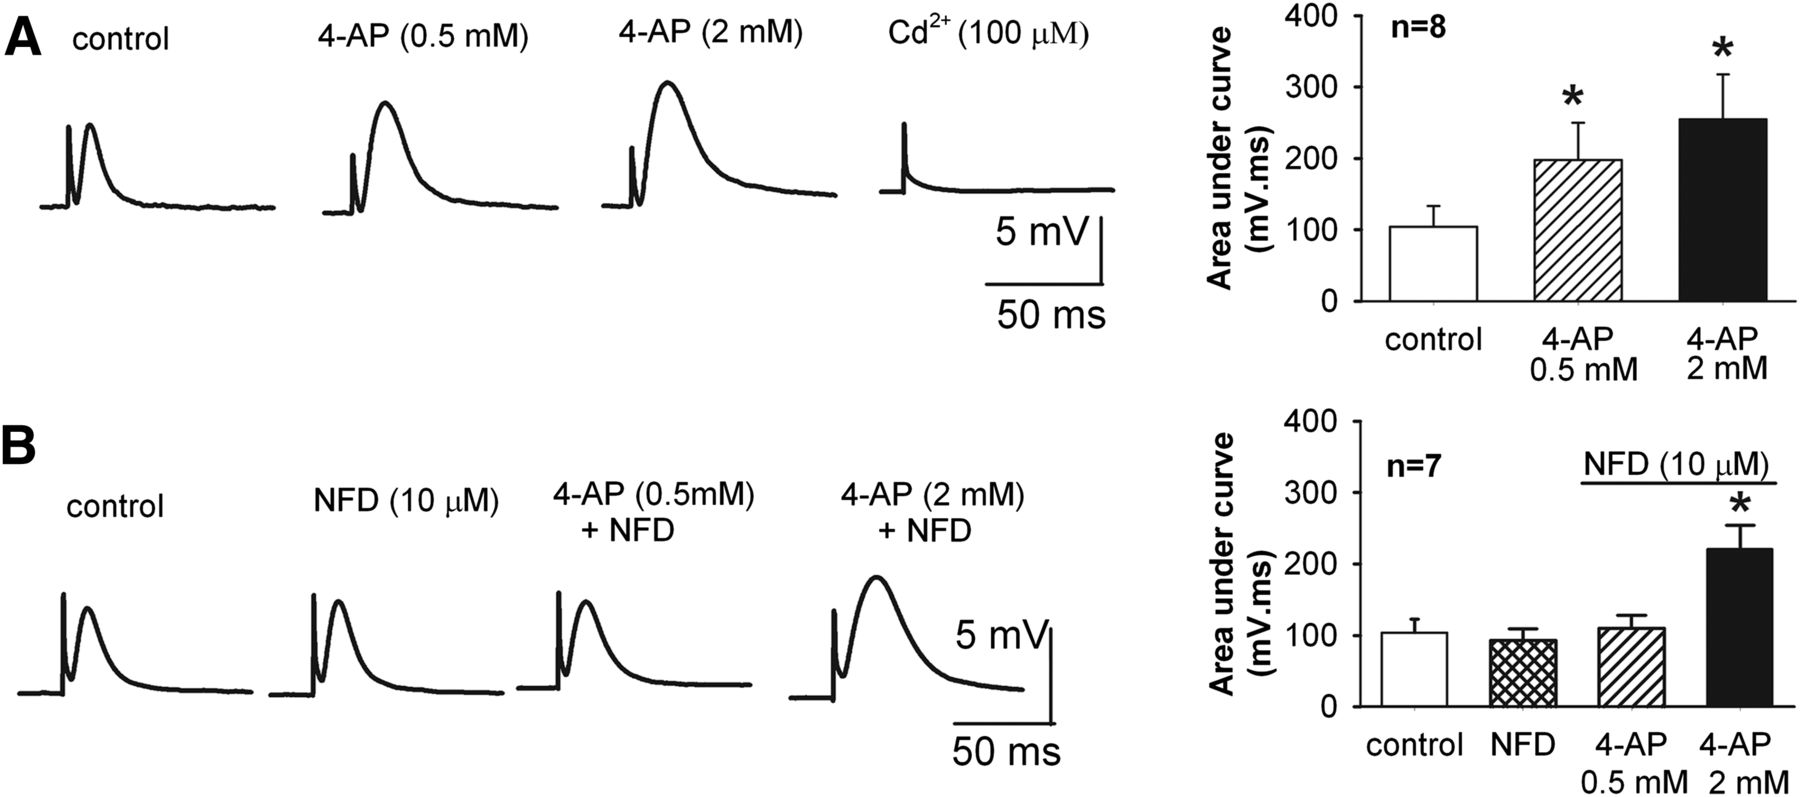 Potentiation of High Voltage–Activated Calcium Channels by 4